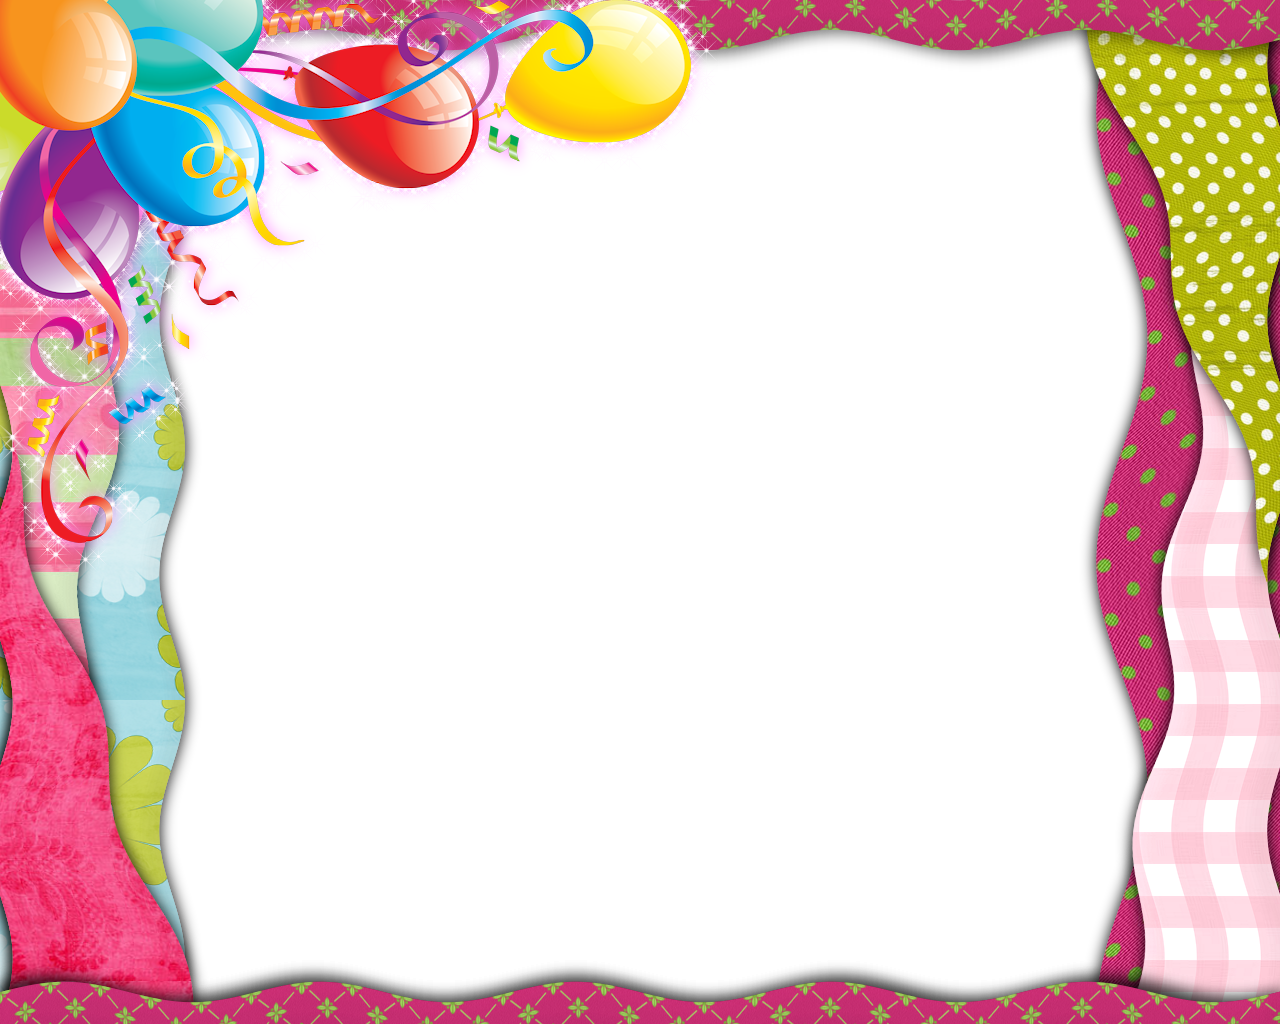 Png birthday frames. Pink balloons buscar con